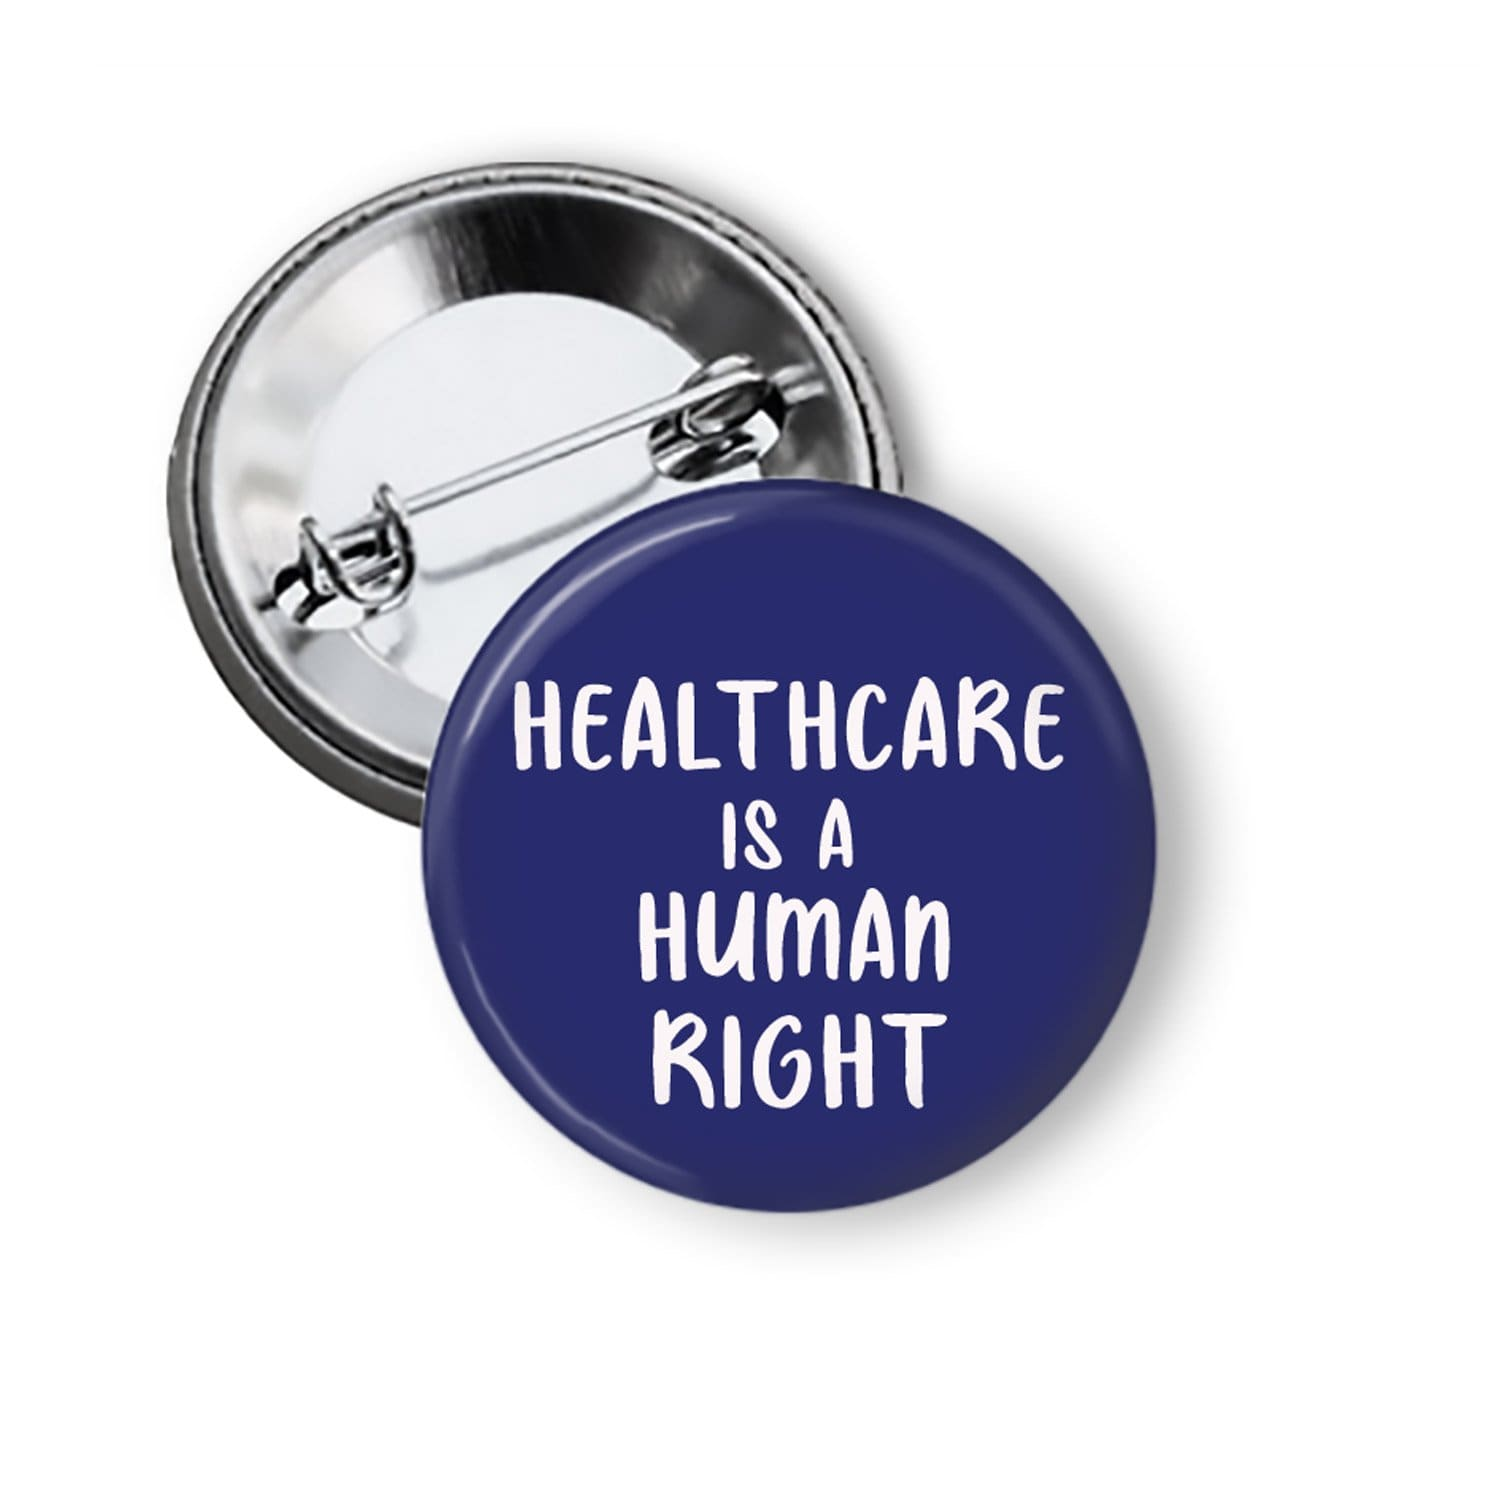 Healthcare is a Human Right Pinback Button Pins Buttons For the People